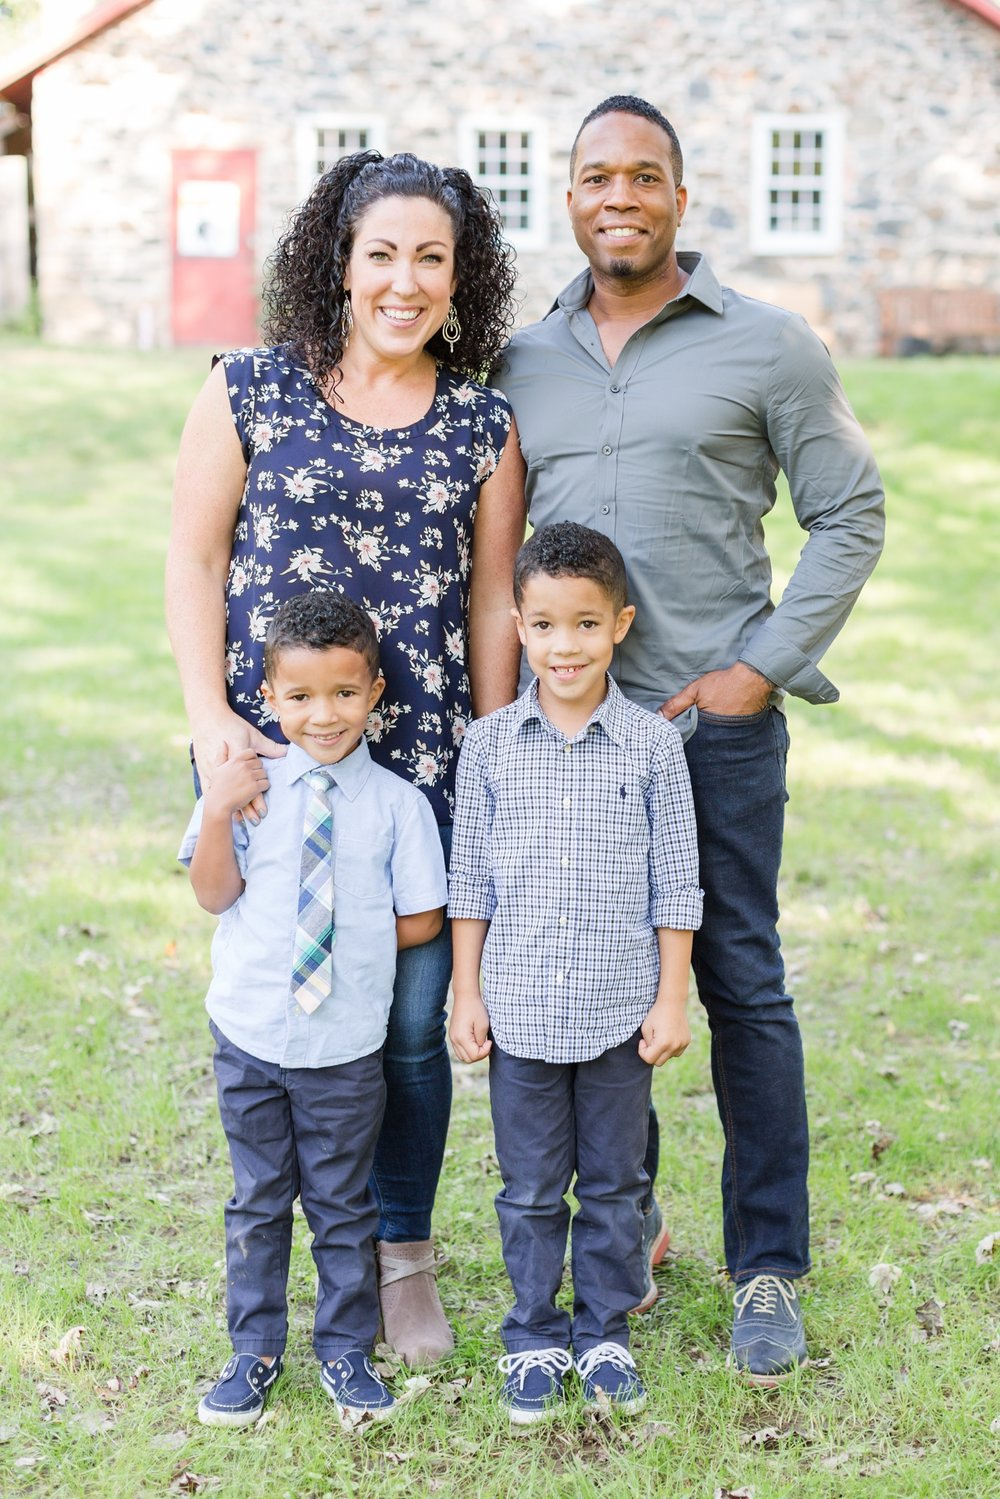 Smith-Padgett Family 2018-7_Jerusalem-Mill-Maryland-Family-Photographer-anna-grace-photography-photo.jpg